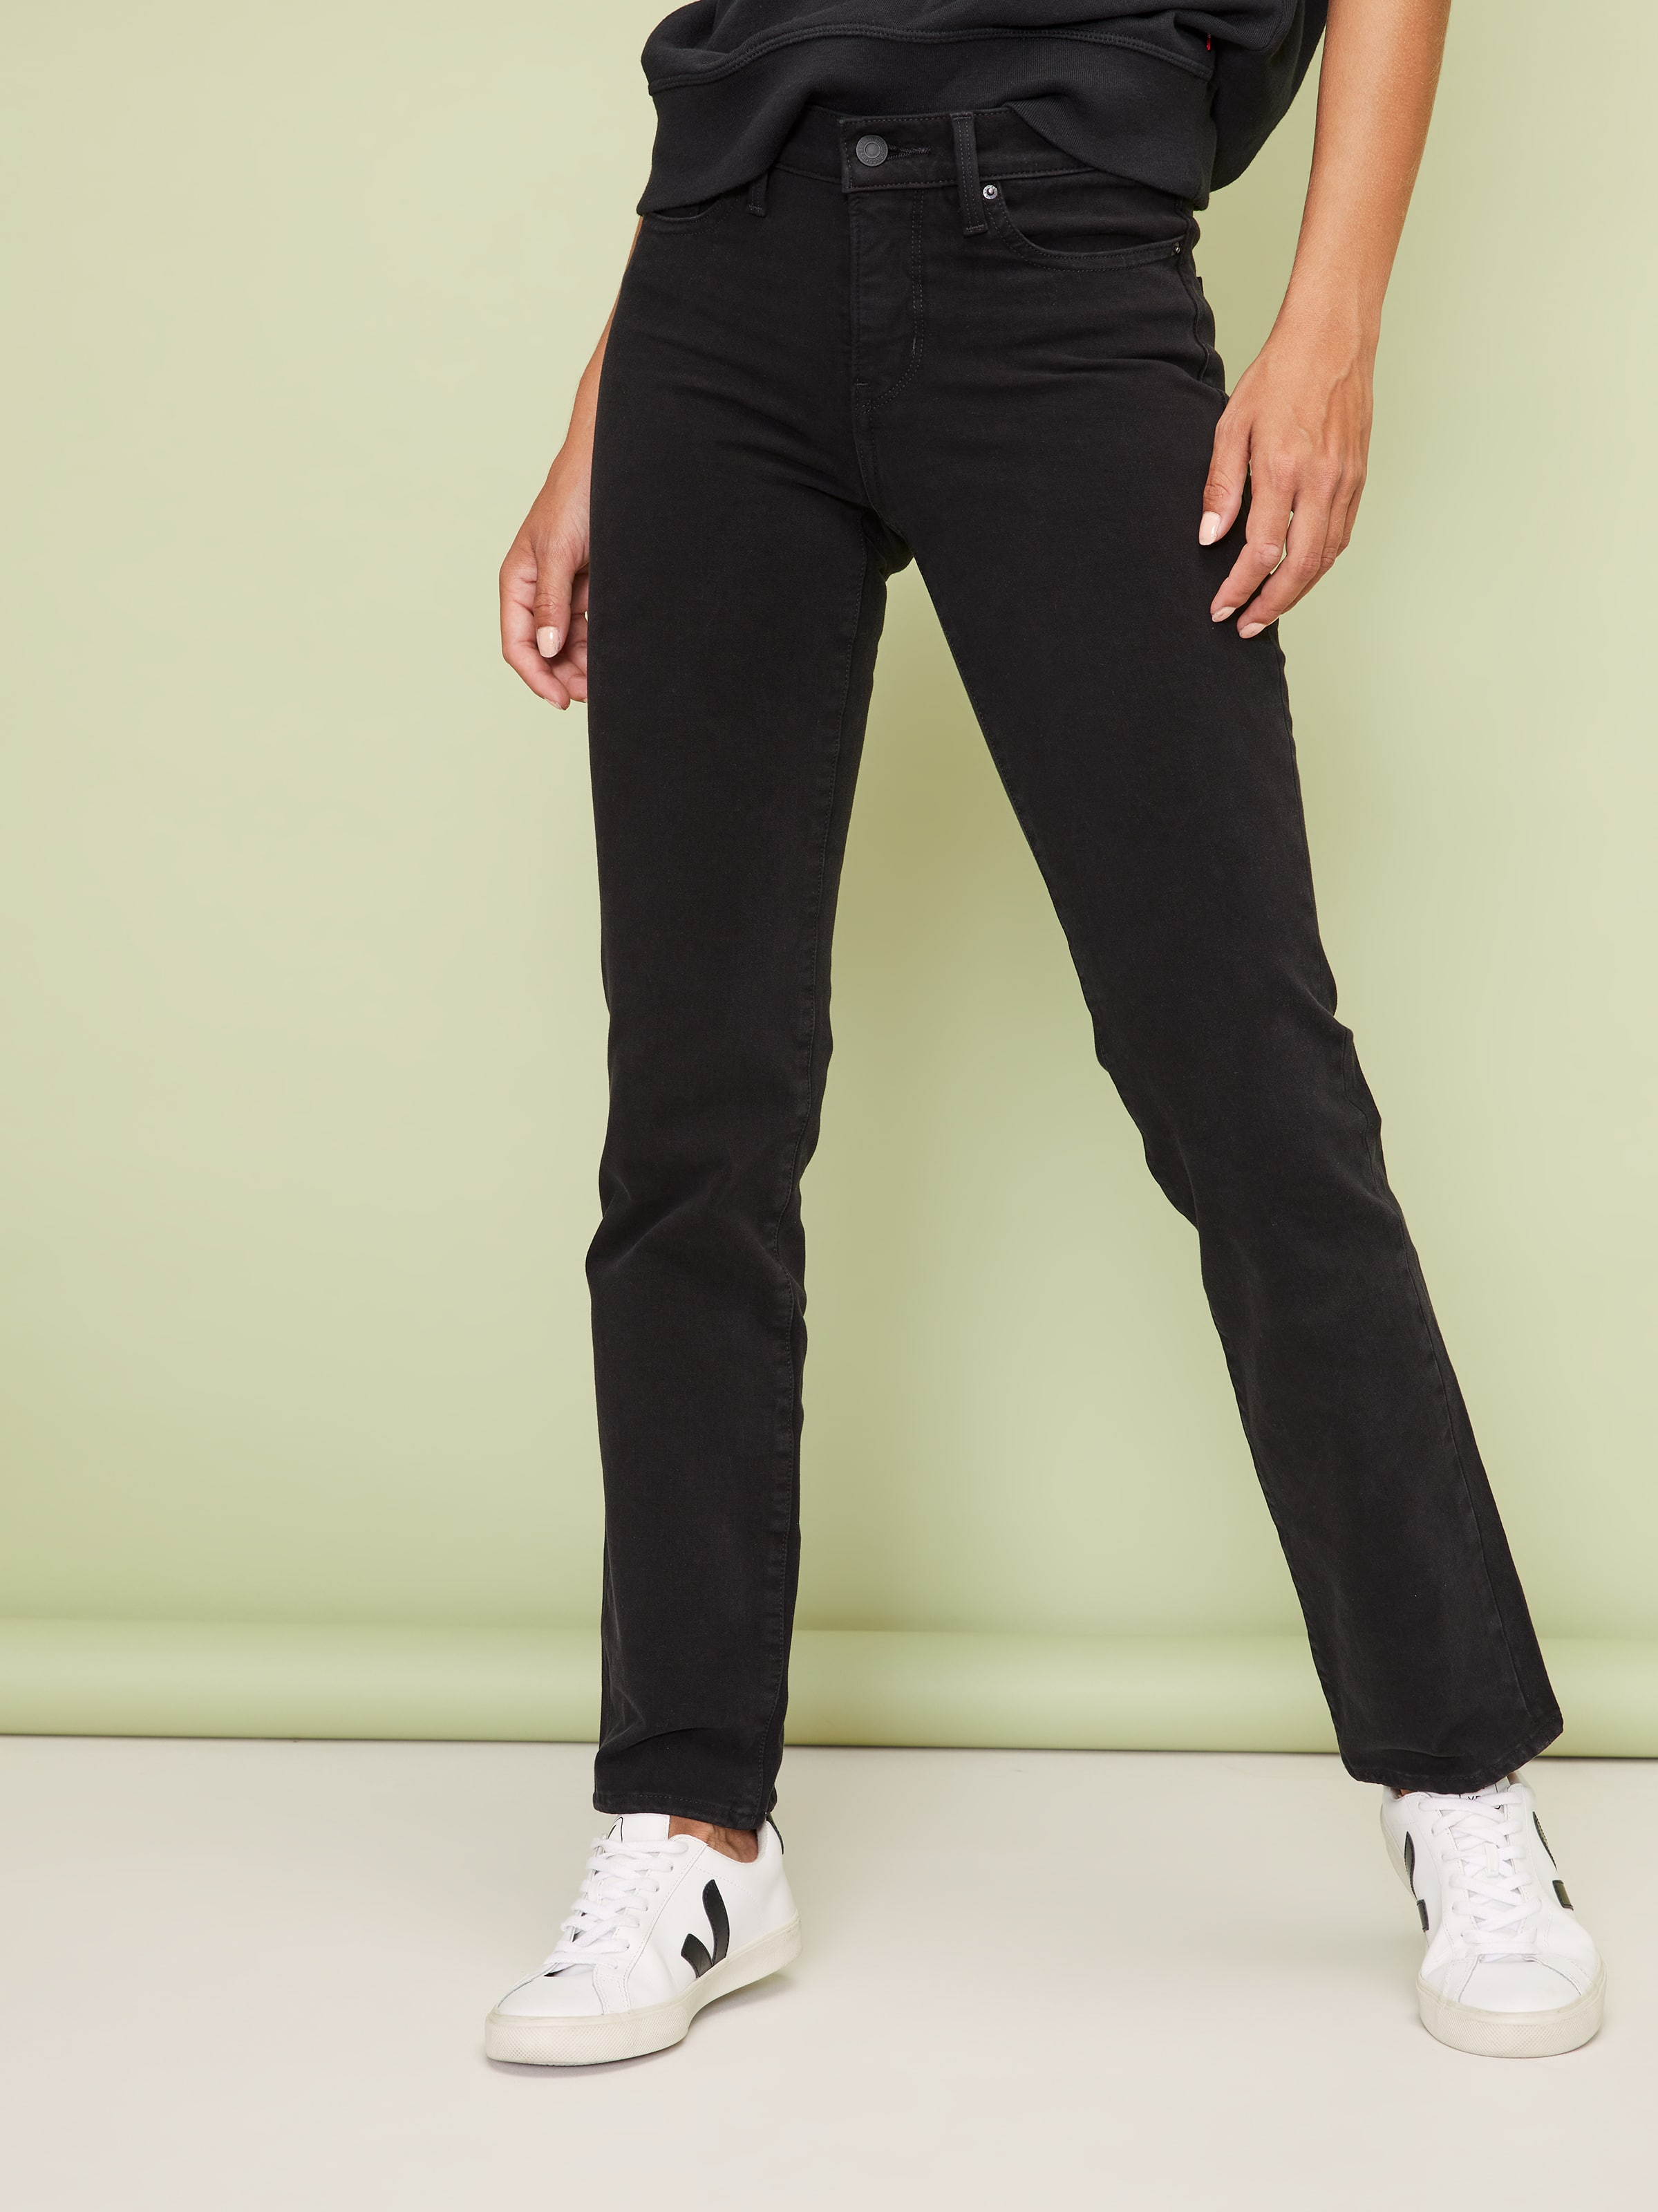 9a65defff020 Levi's 314 Shaping Straight In Black - Just Jeans Online